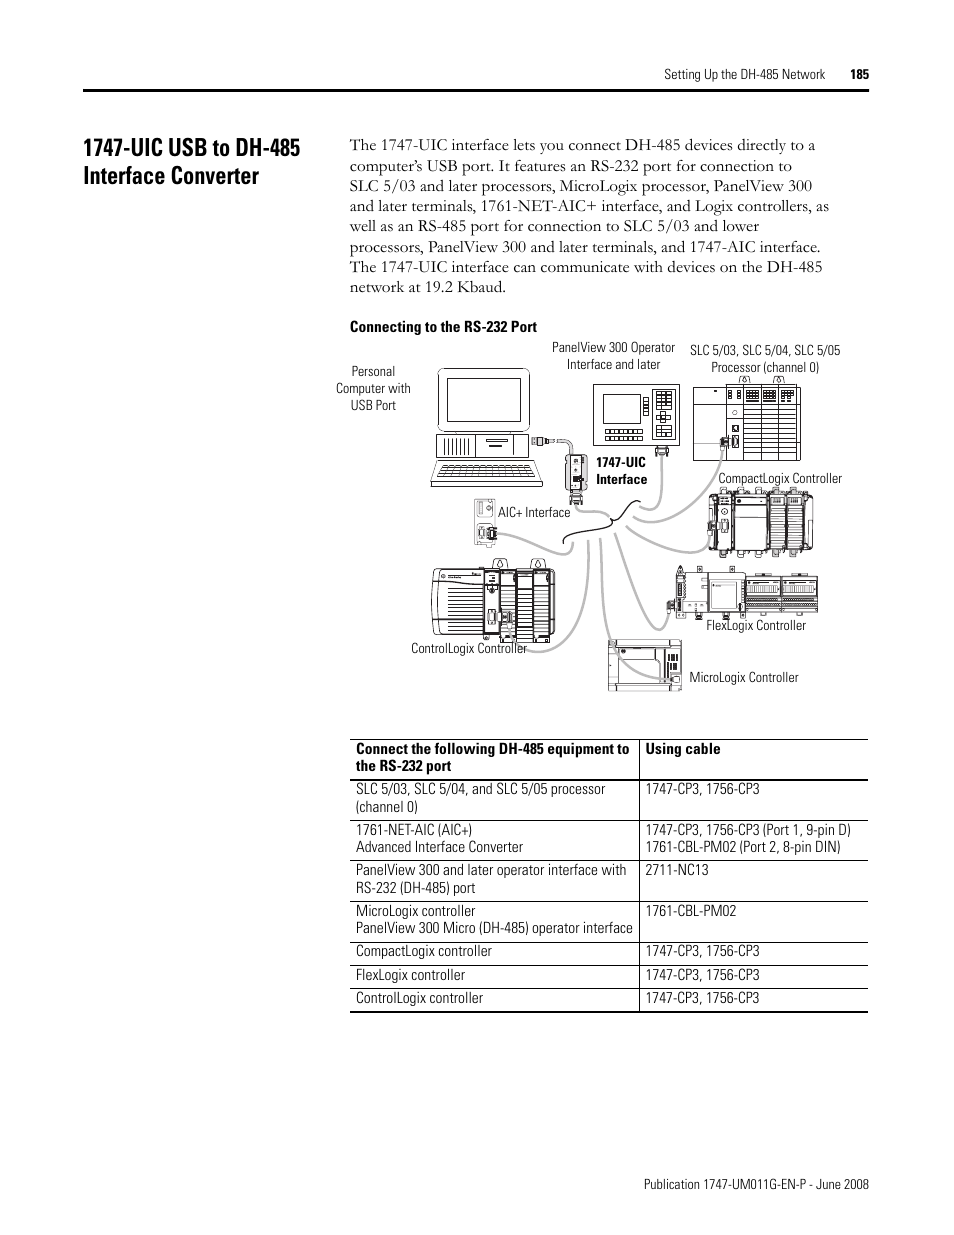 1747 Uic Usb To Dh 485 Interface Converter Rockwell Automation Nikon D40 Cable Schematic L5xx Slc 500 Modular Hardware Style User Manual Page 185 296